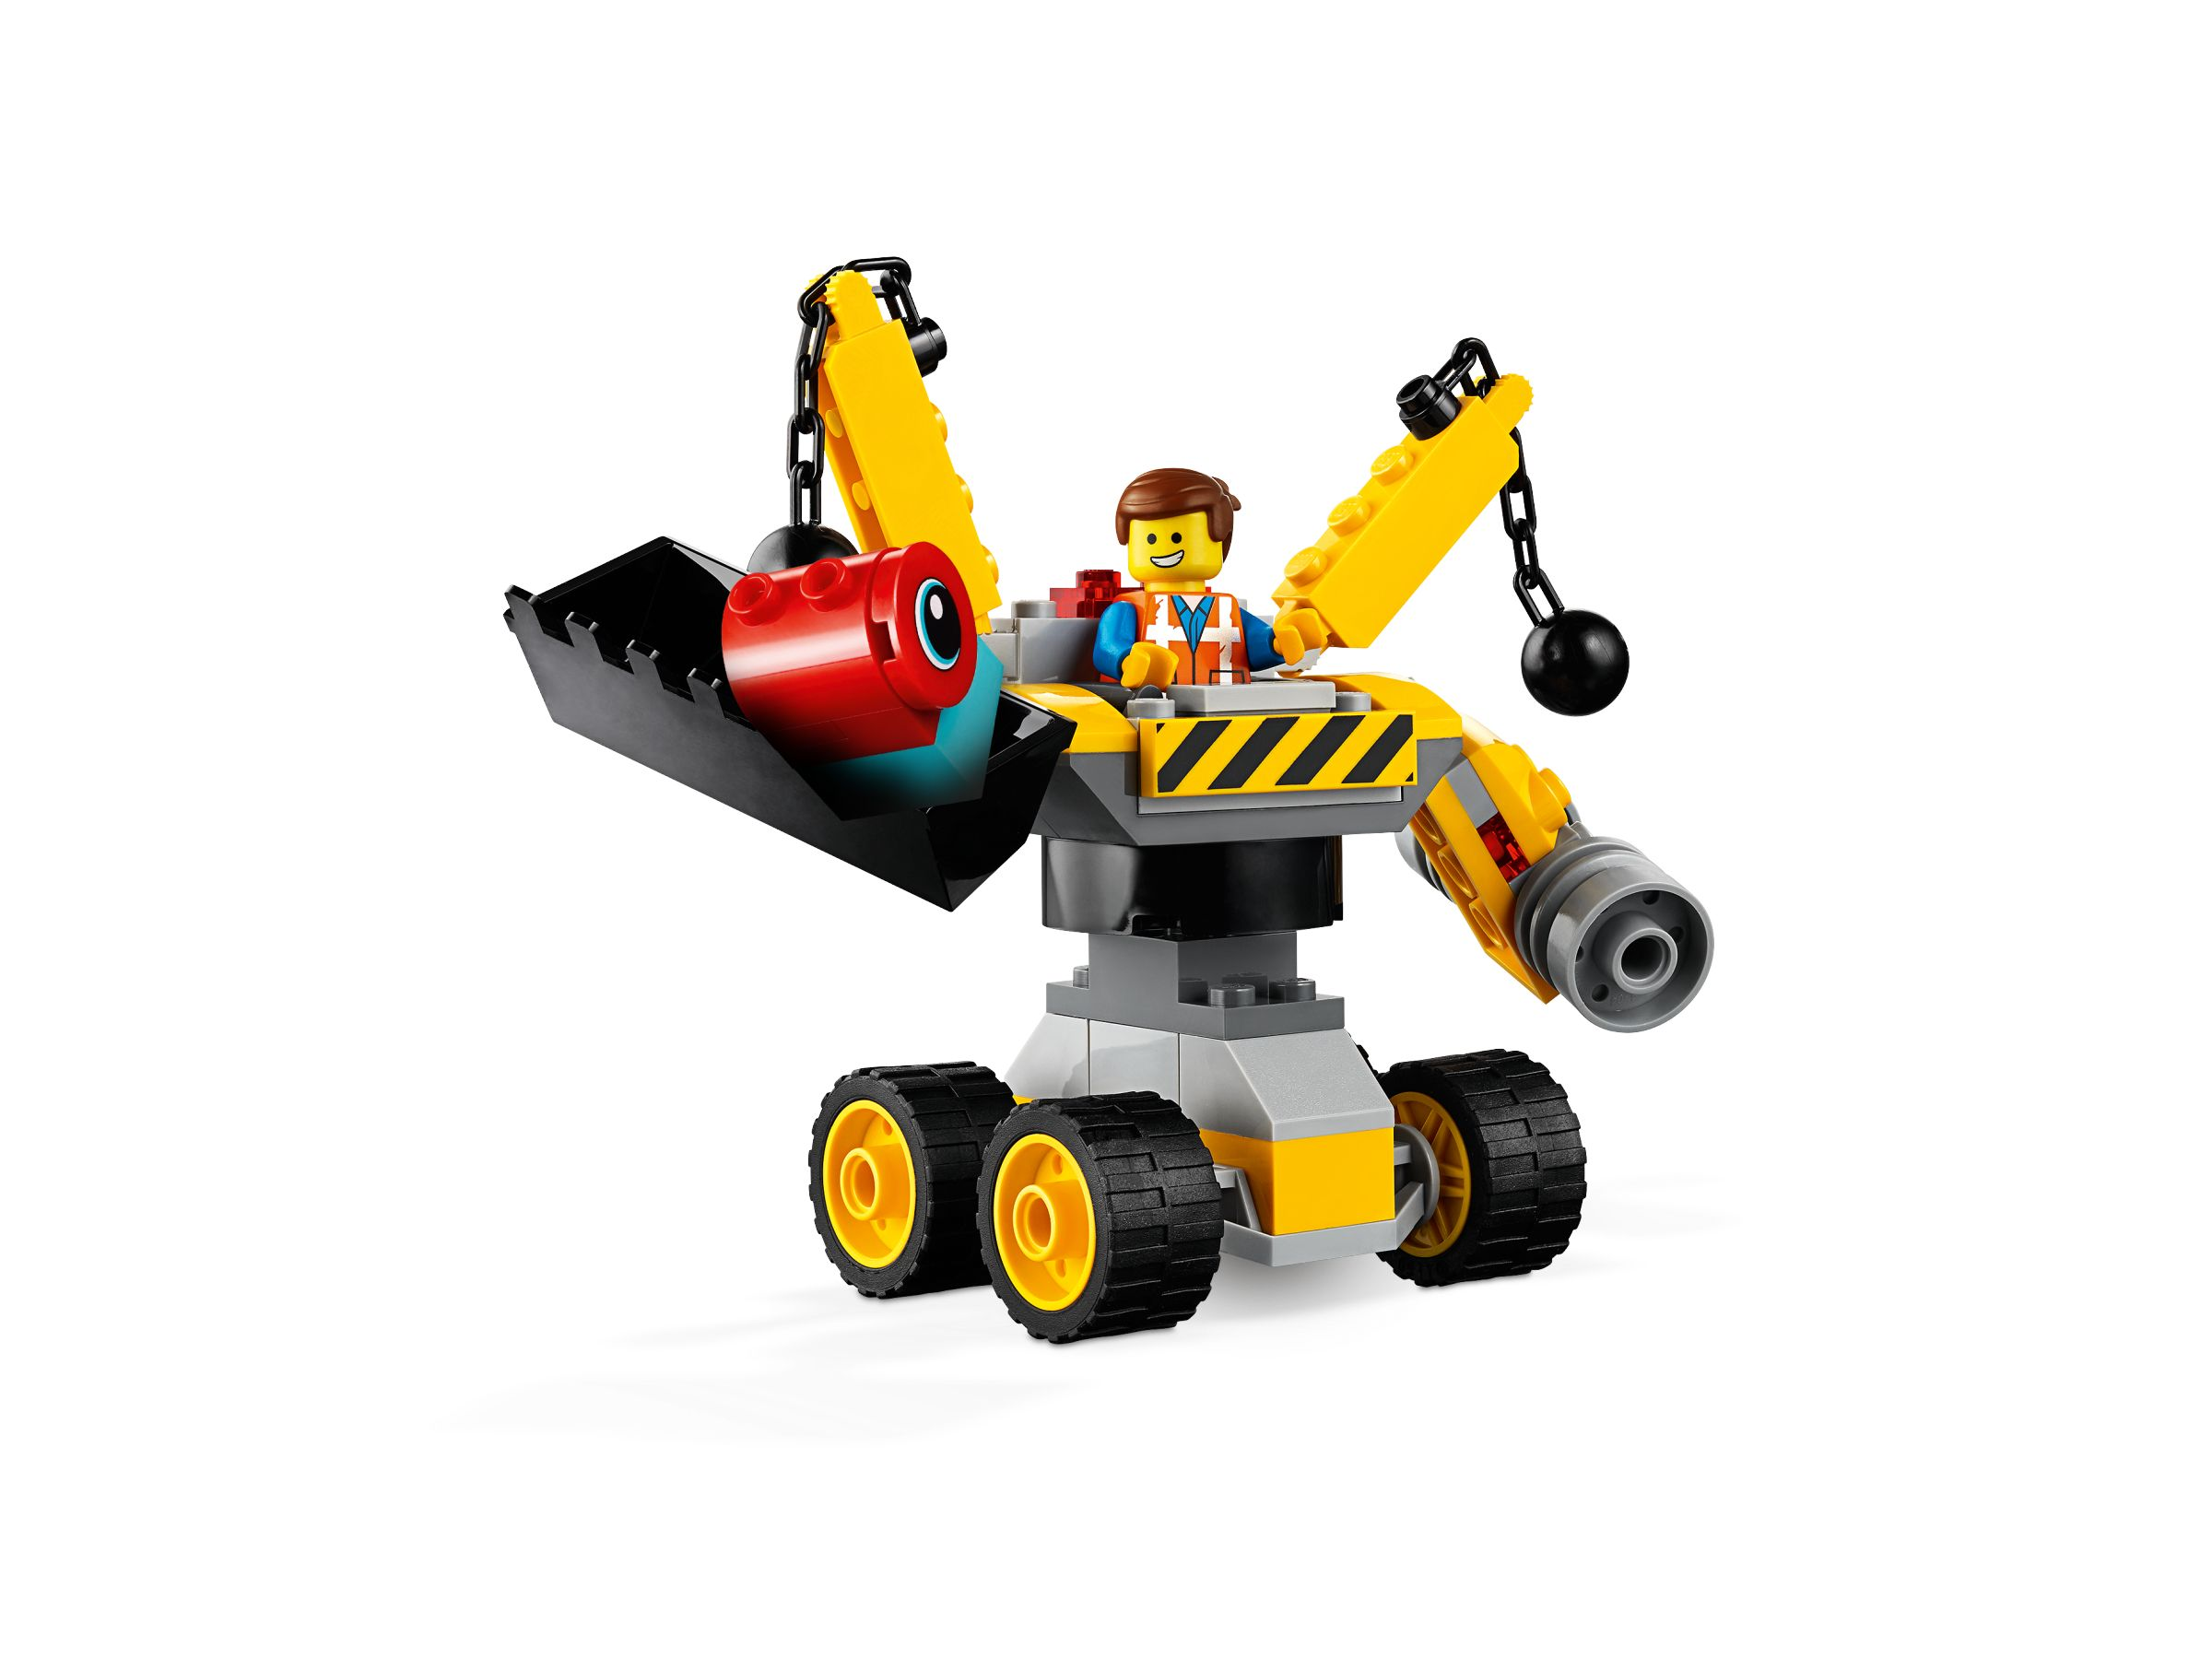 LEGO The LEGO Movie 2 70832 Emmets Baukoffer! LEGO_70832_alt5.jpg